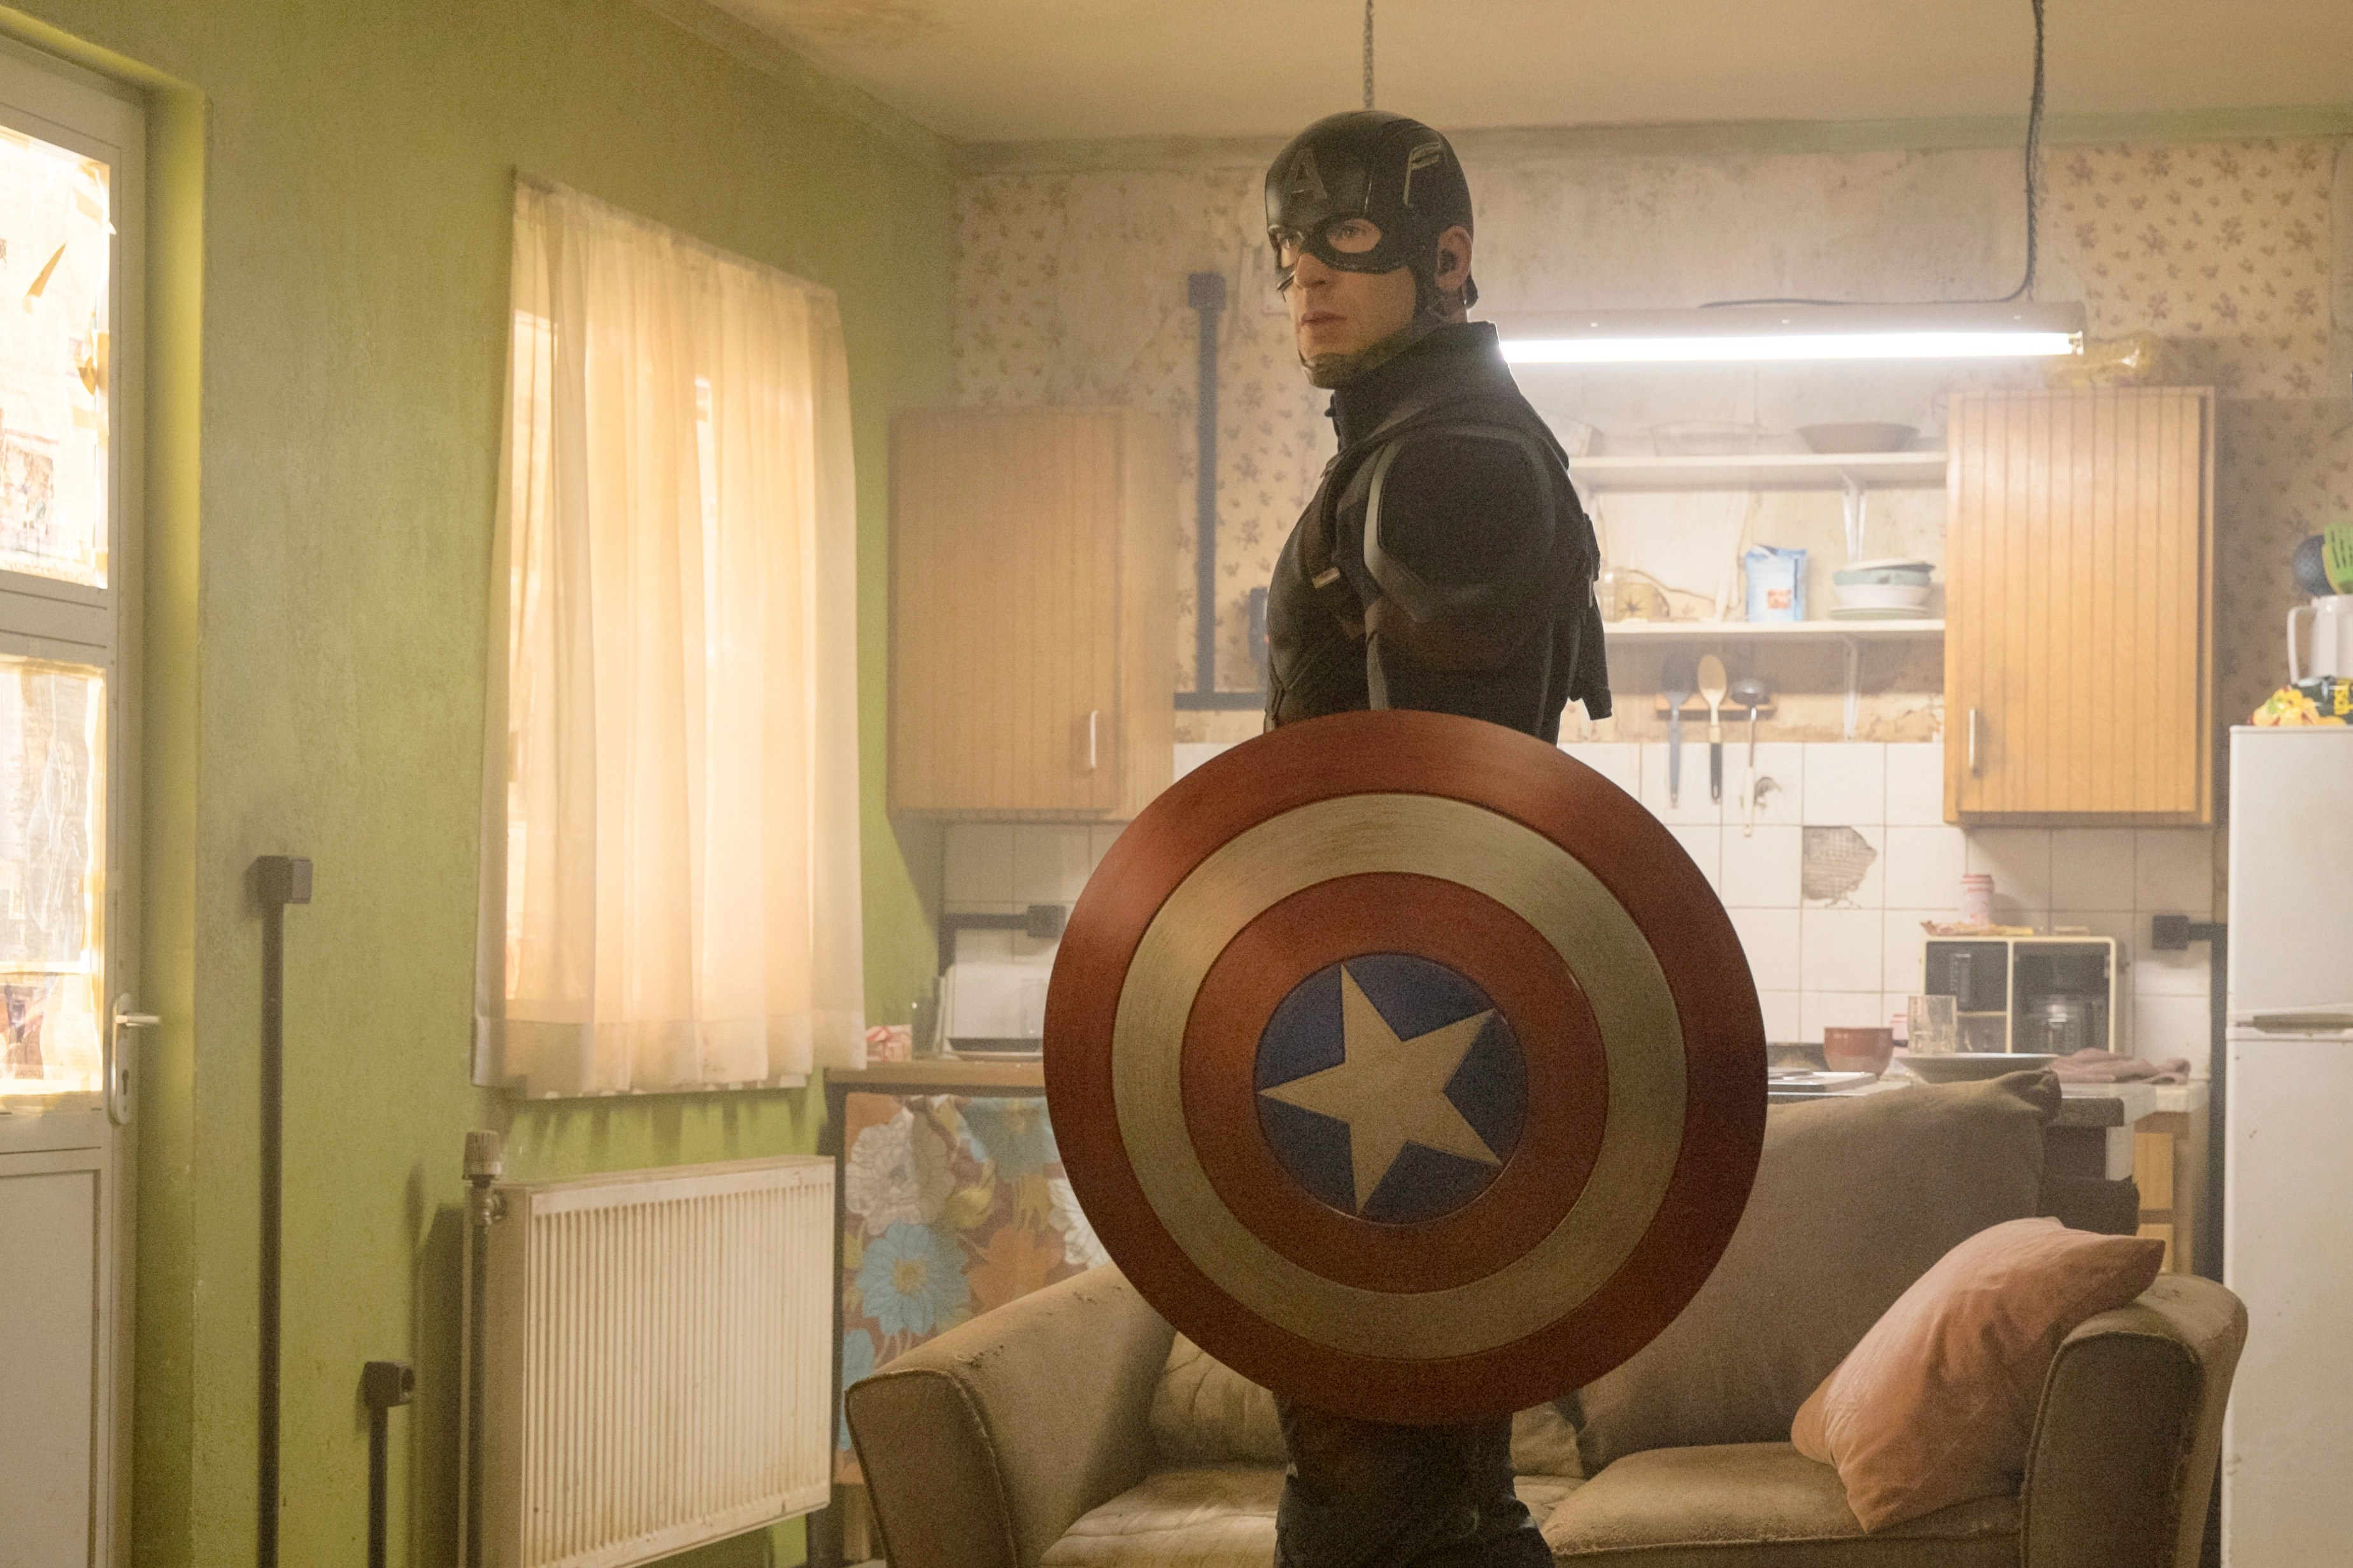 jarvis chair oz design church chairs for sale used captain america civil war a who s in the mcu guide rolling